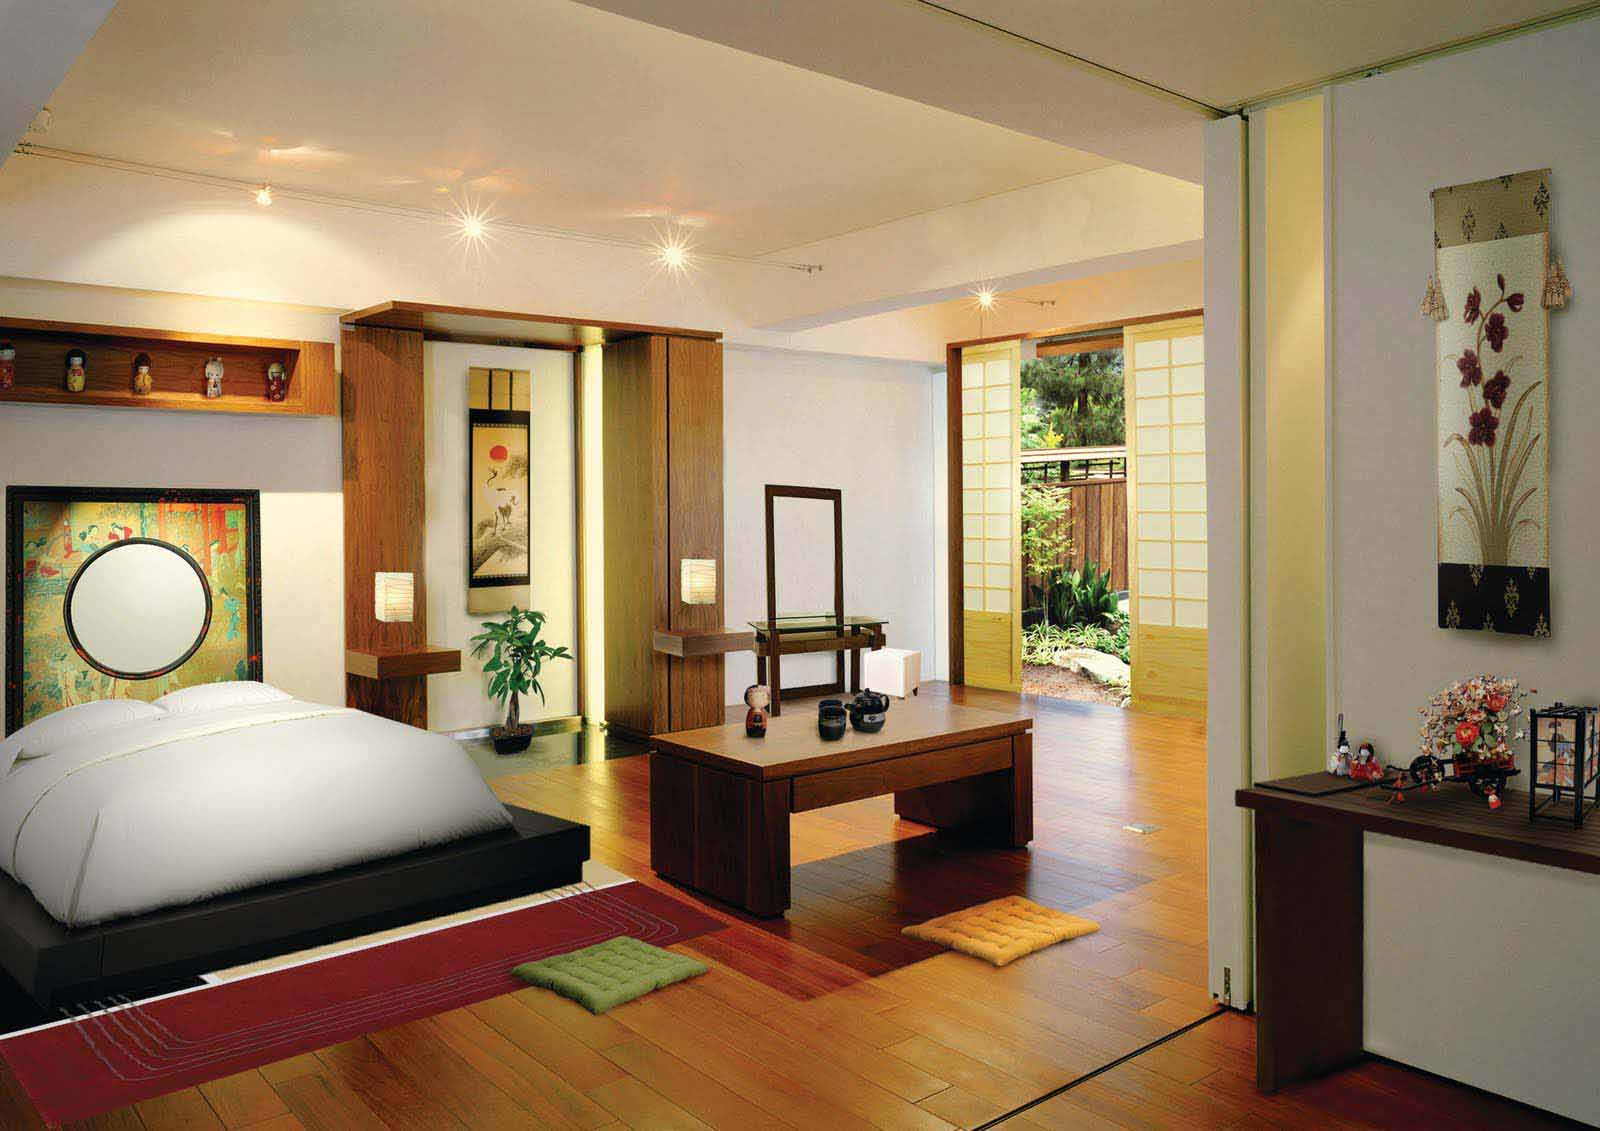 japanese home decoration ideas small master bedroom ideas 11609